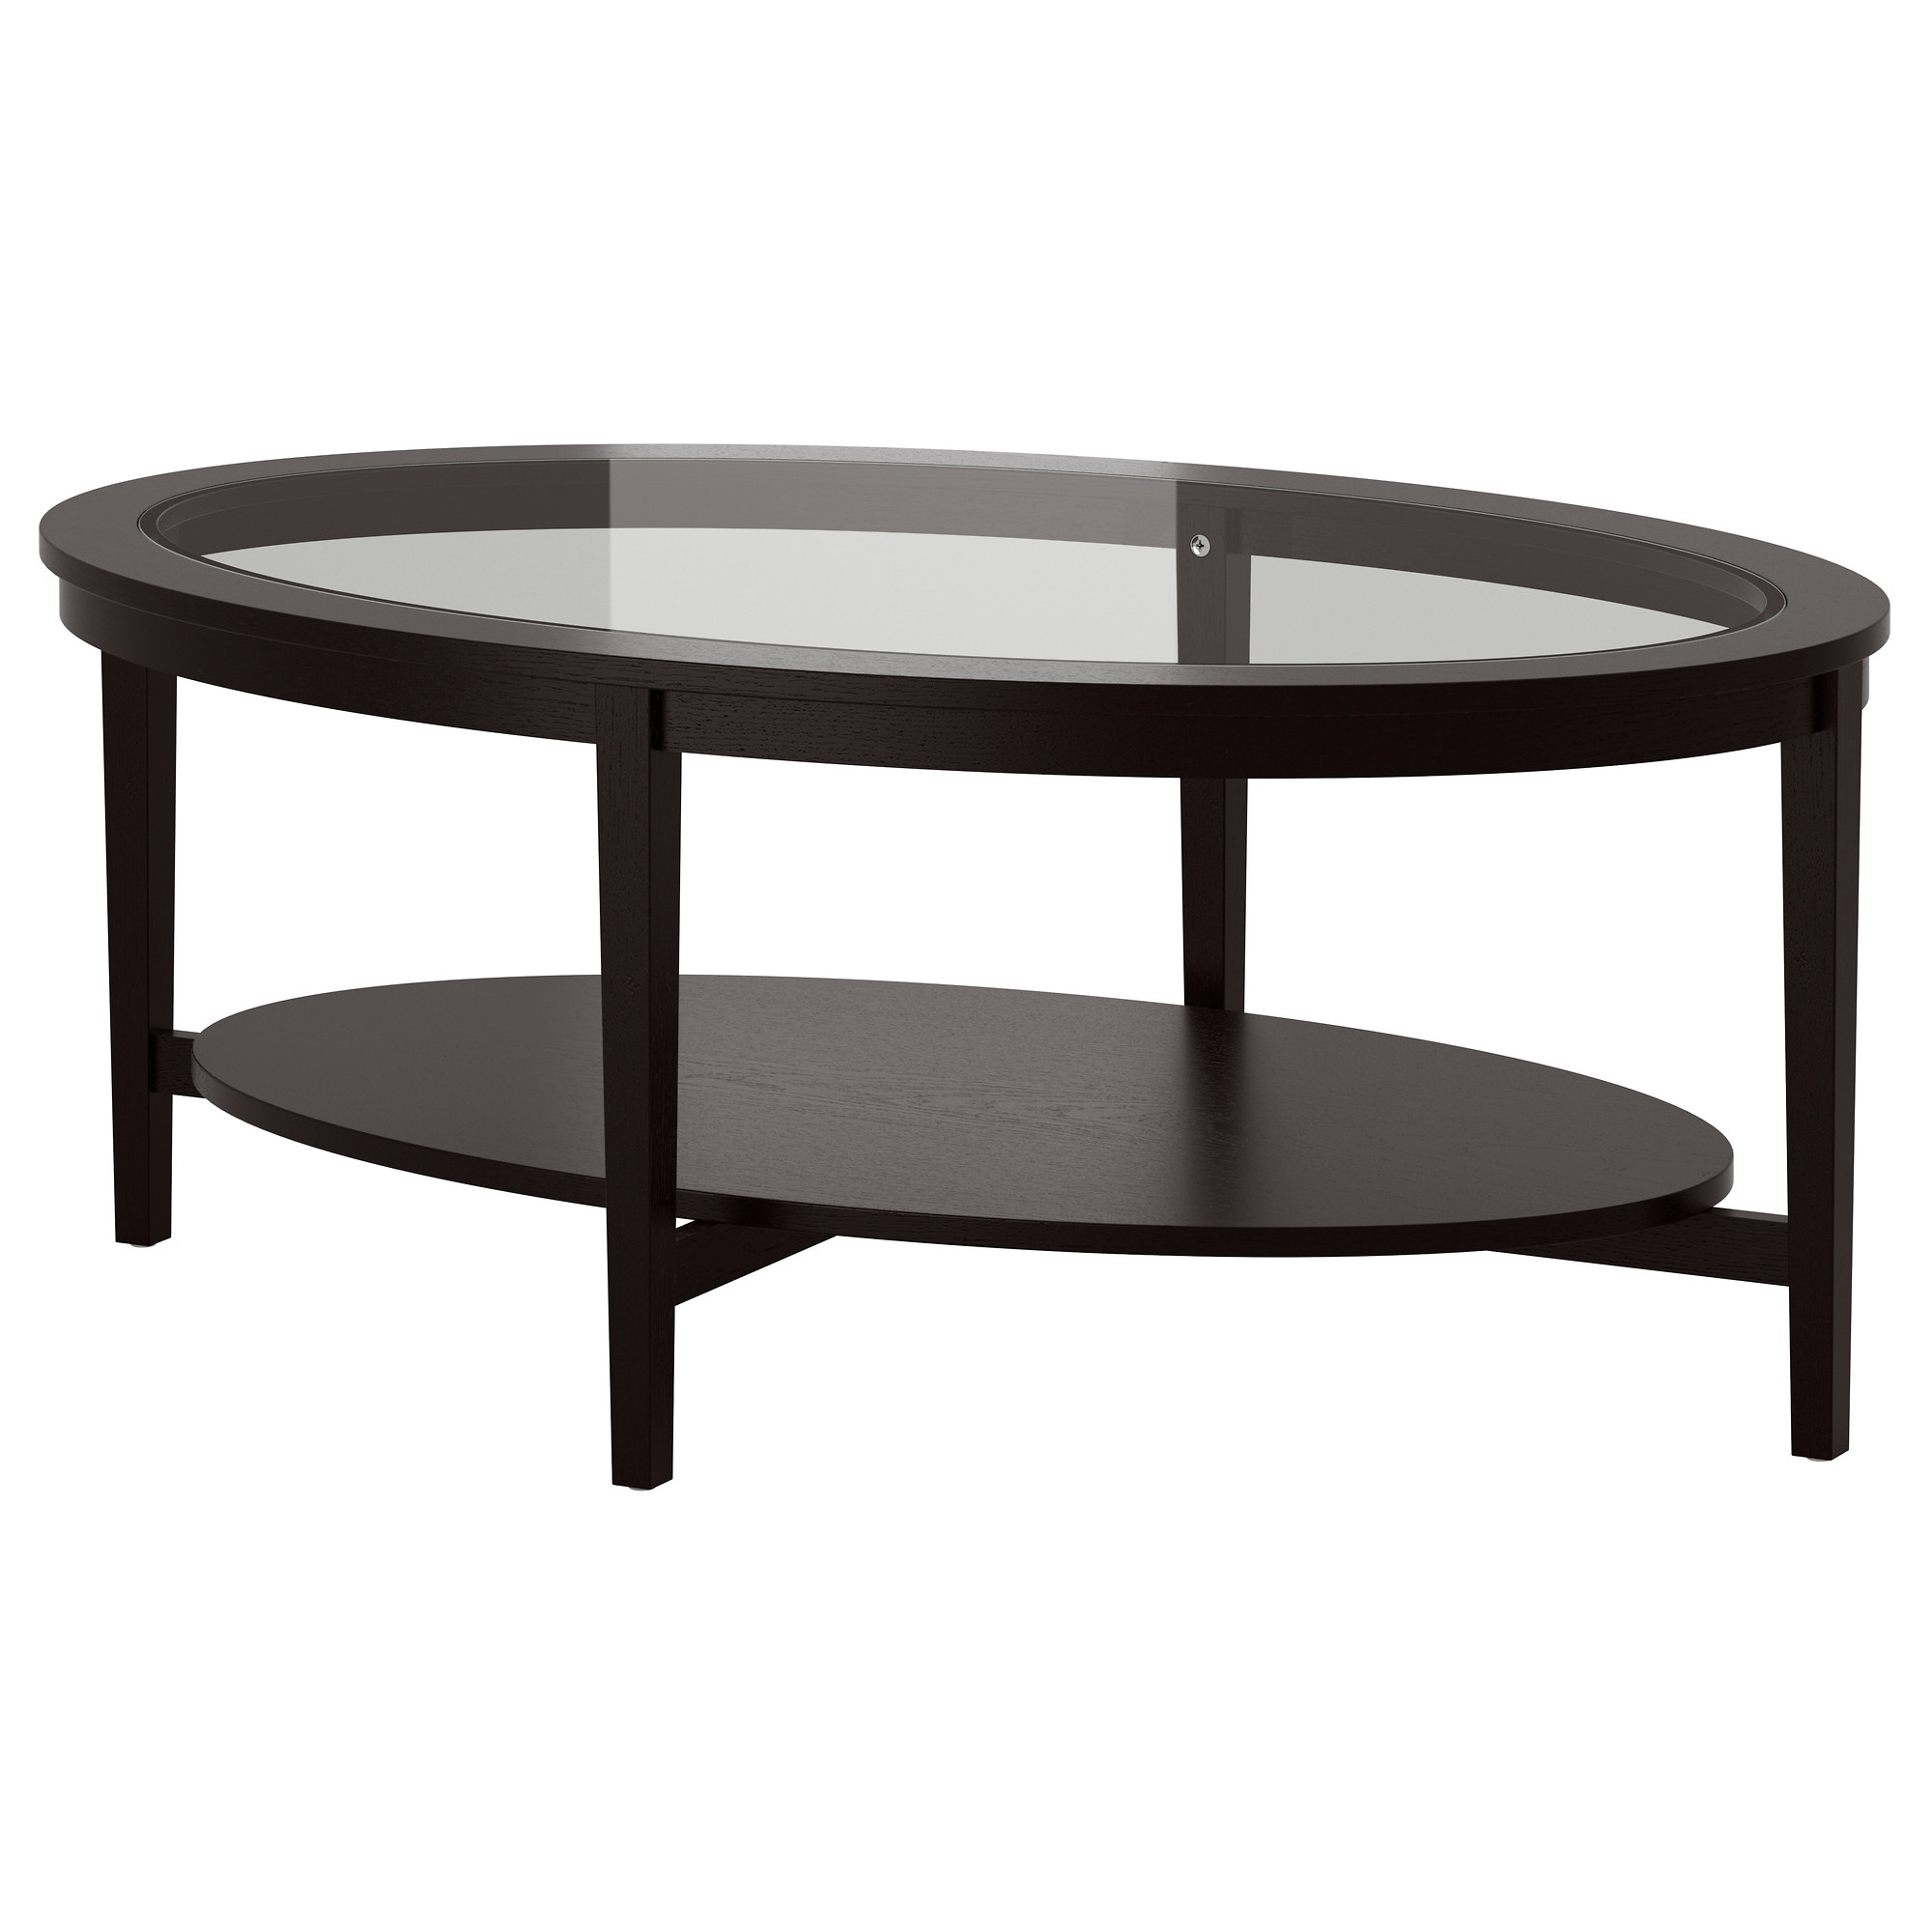 malmsta coffee table - ikea